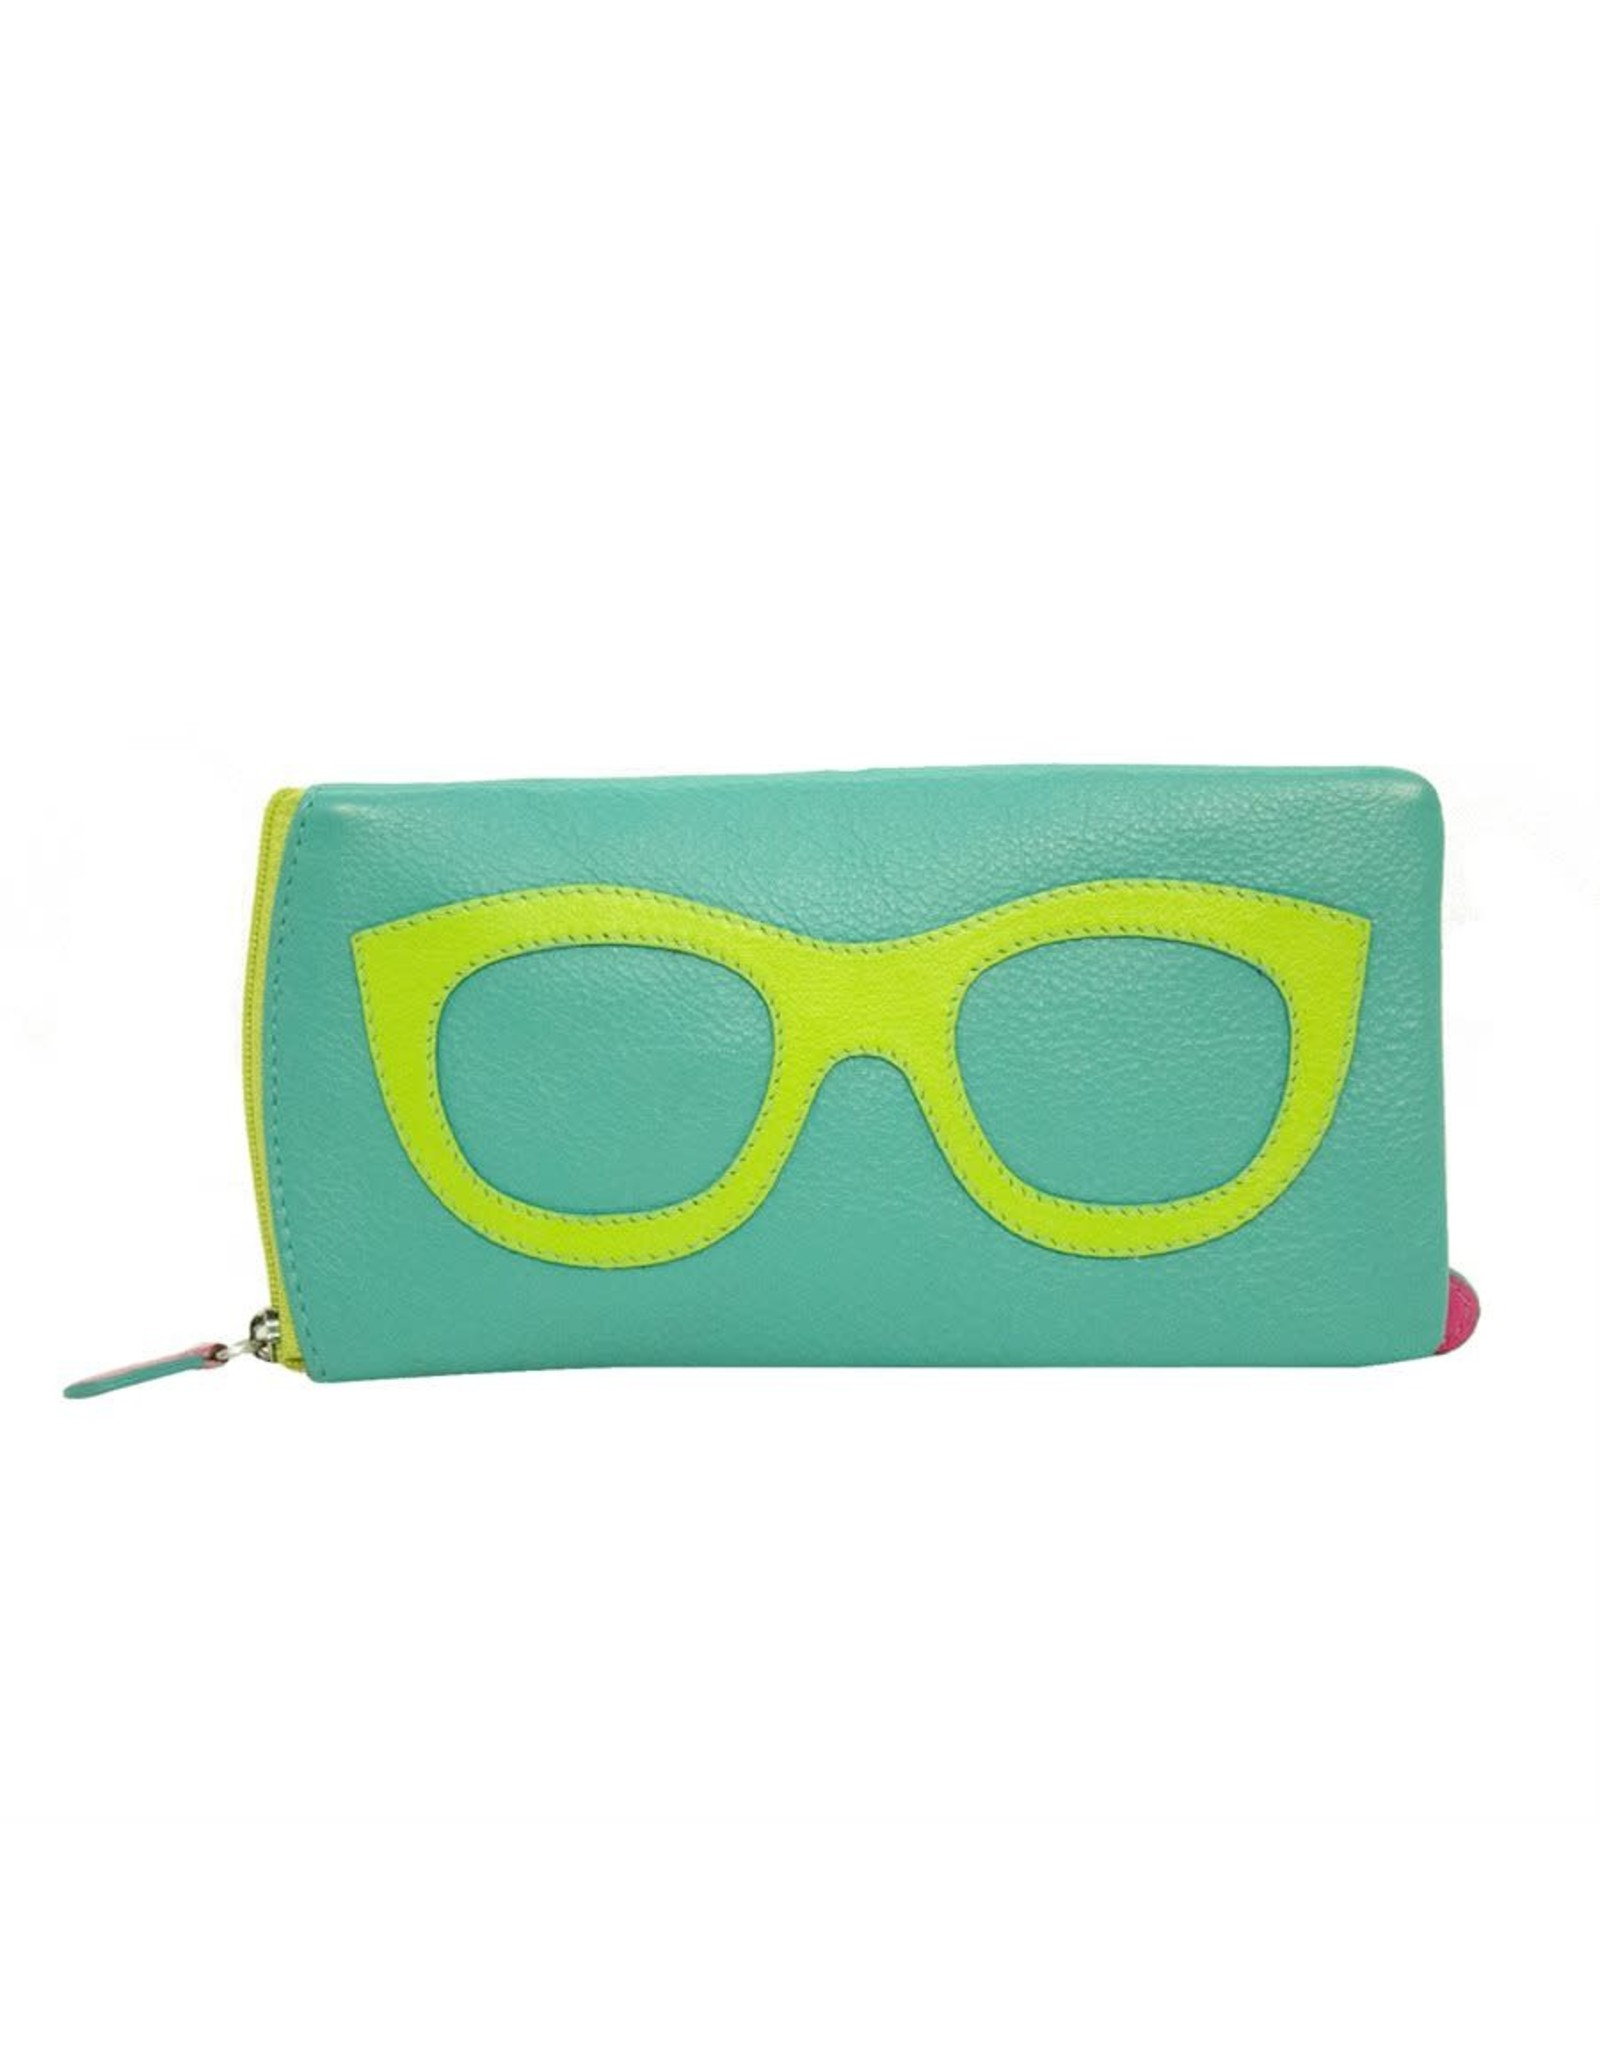 Leather Handbags and Accessories 6462 Turquoise/Leaf/Hot Pink - Leather Eyeglass Case